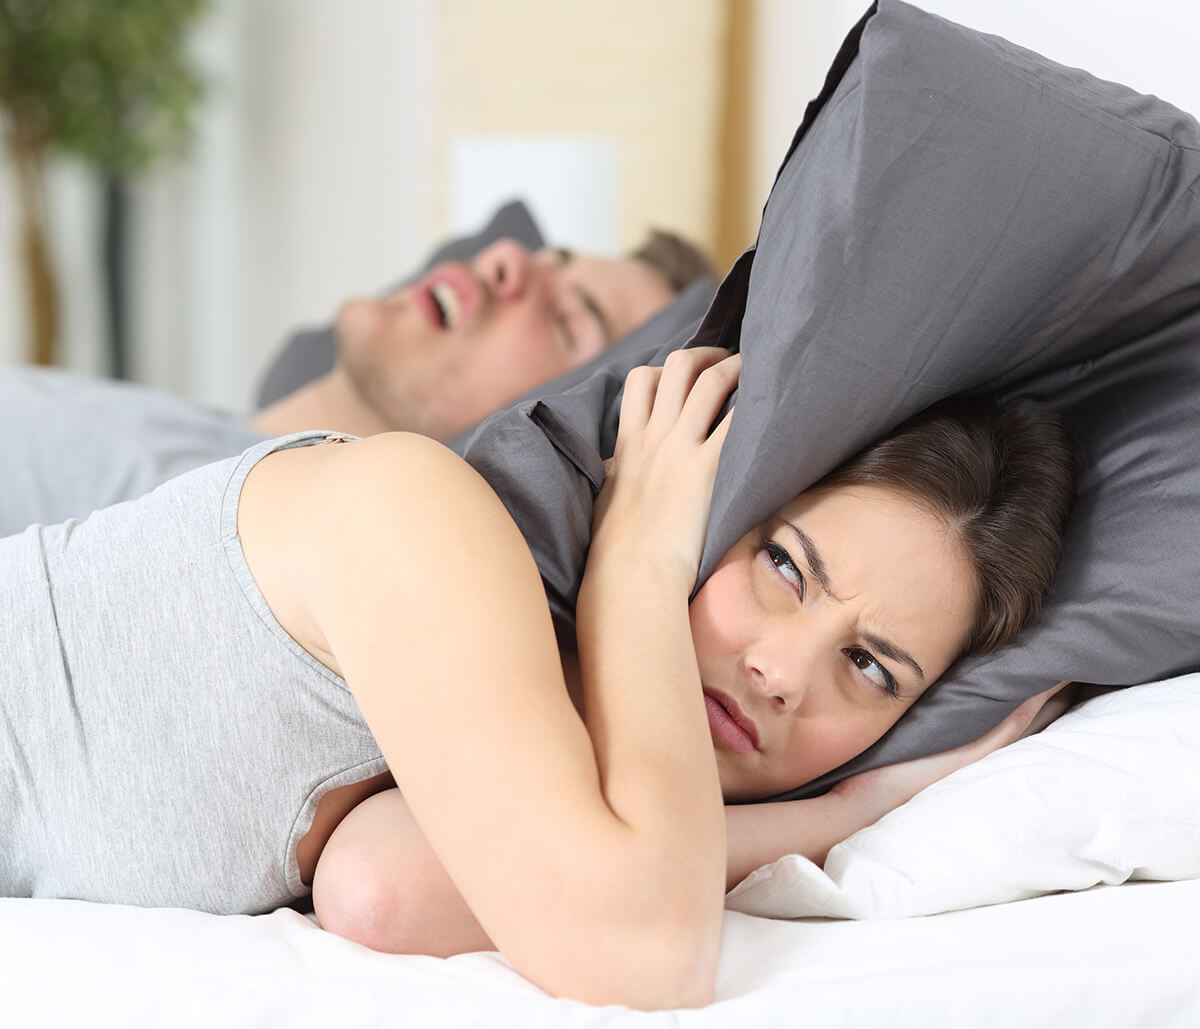 Family Dentistry in Rochester Hills Dr. John Aurelia Rochester, MI dentist offers treatment for sleep apnea that is effective, hassle-free